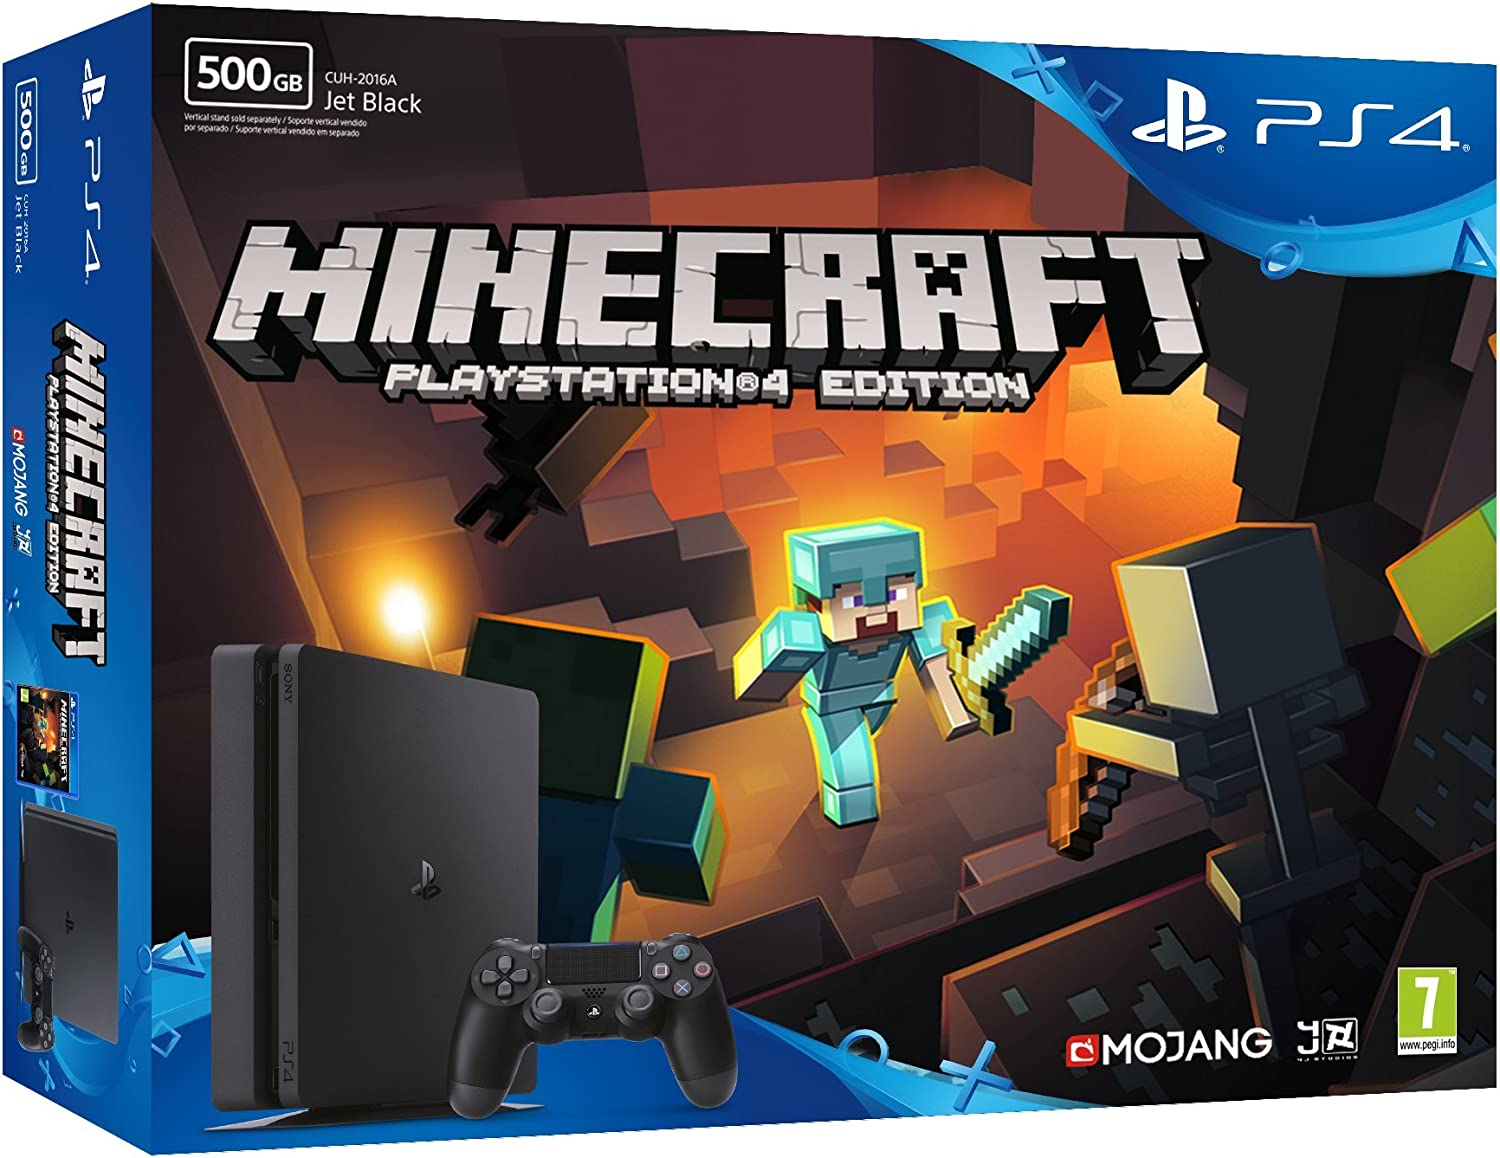 PlayStation 4 (PS4) - Consola De 500 GB + Minecraft: Amazon.es: Videojuegos